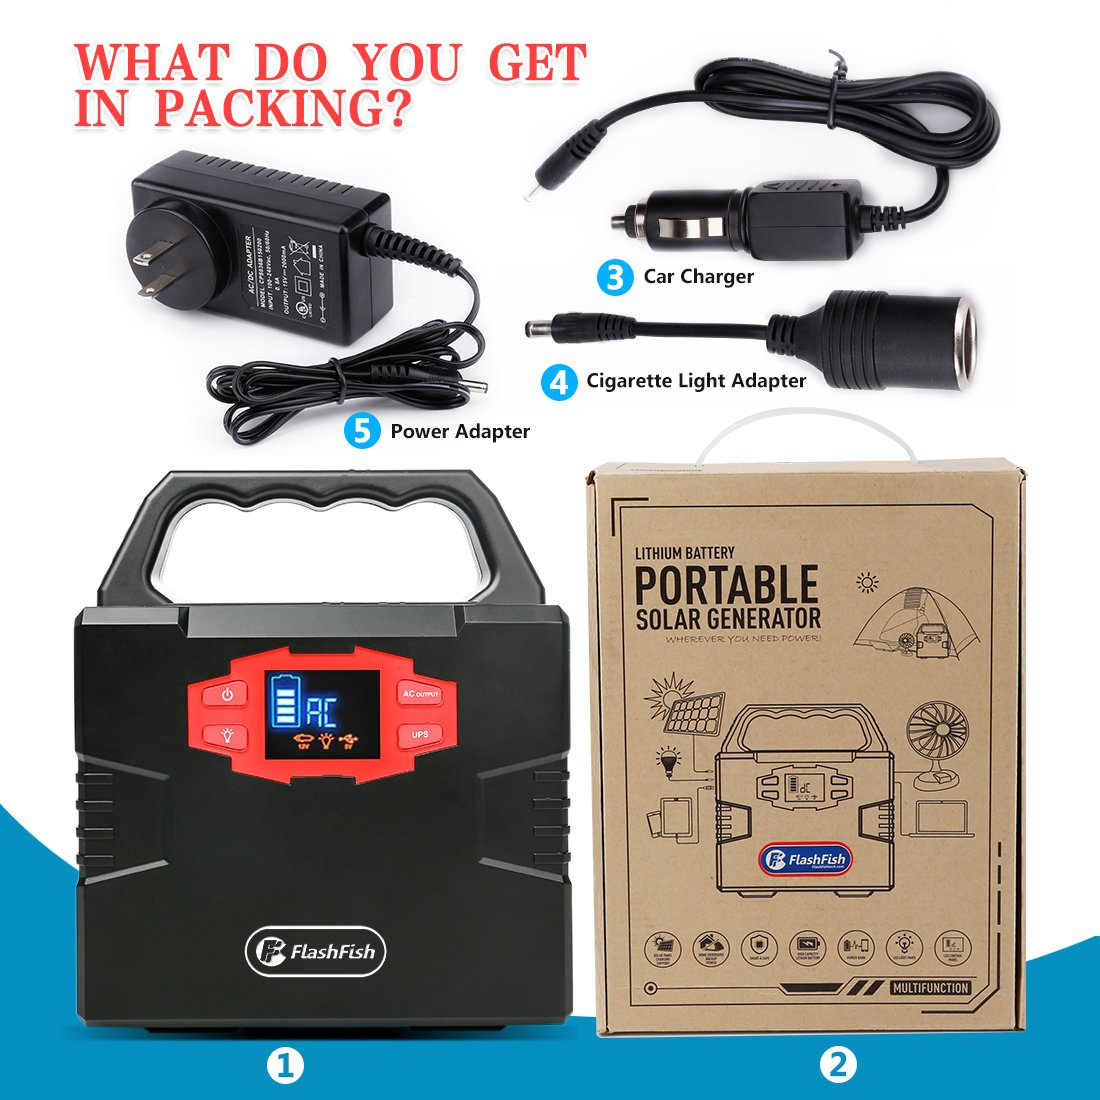 Portable Solar Generator, FlashFish 150Wh Power Station CPAP Battery for Camping, Outdoor Emergency Power Supply Lithium Backup Battery for Drone Camping Fishing, AC 110V Outlet/DC 12V Out/2 USB Ports by FF FLASHFISH (Image #9)